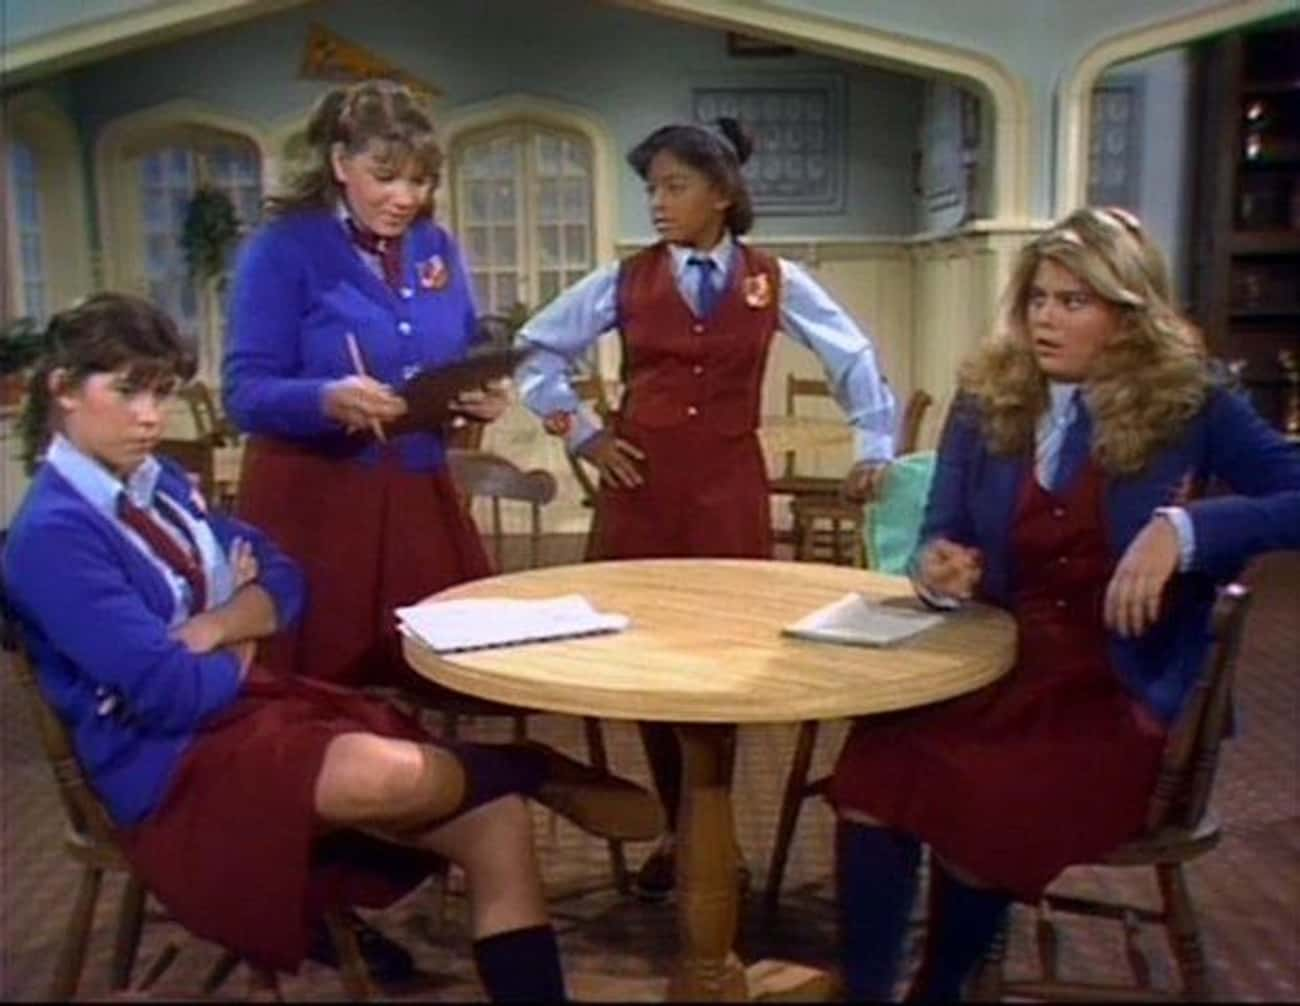 Lisa Whelchel Refused To Film An Episode About Blair's First Time